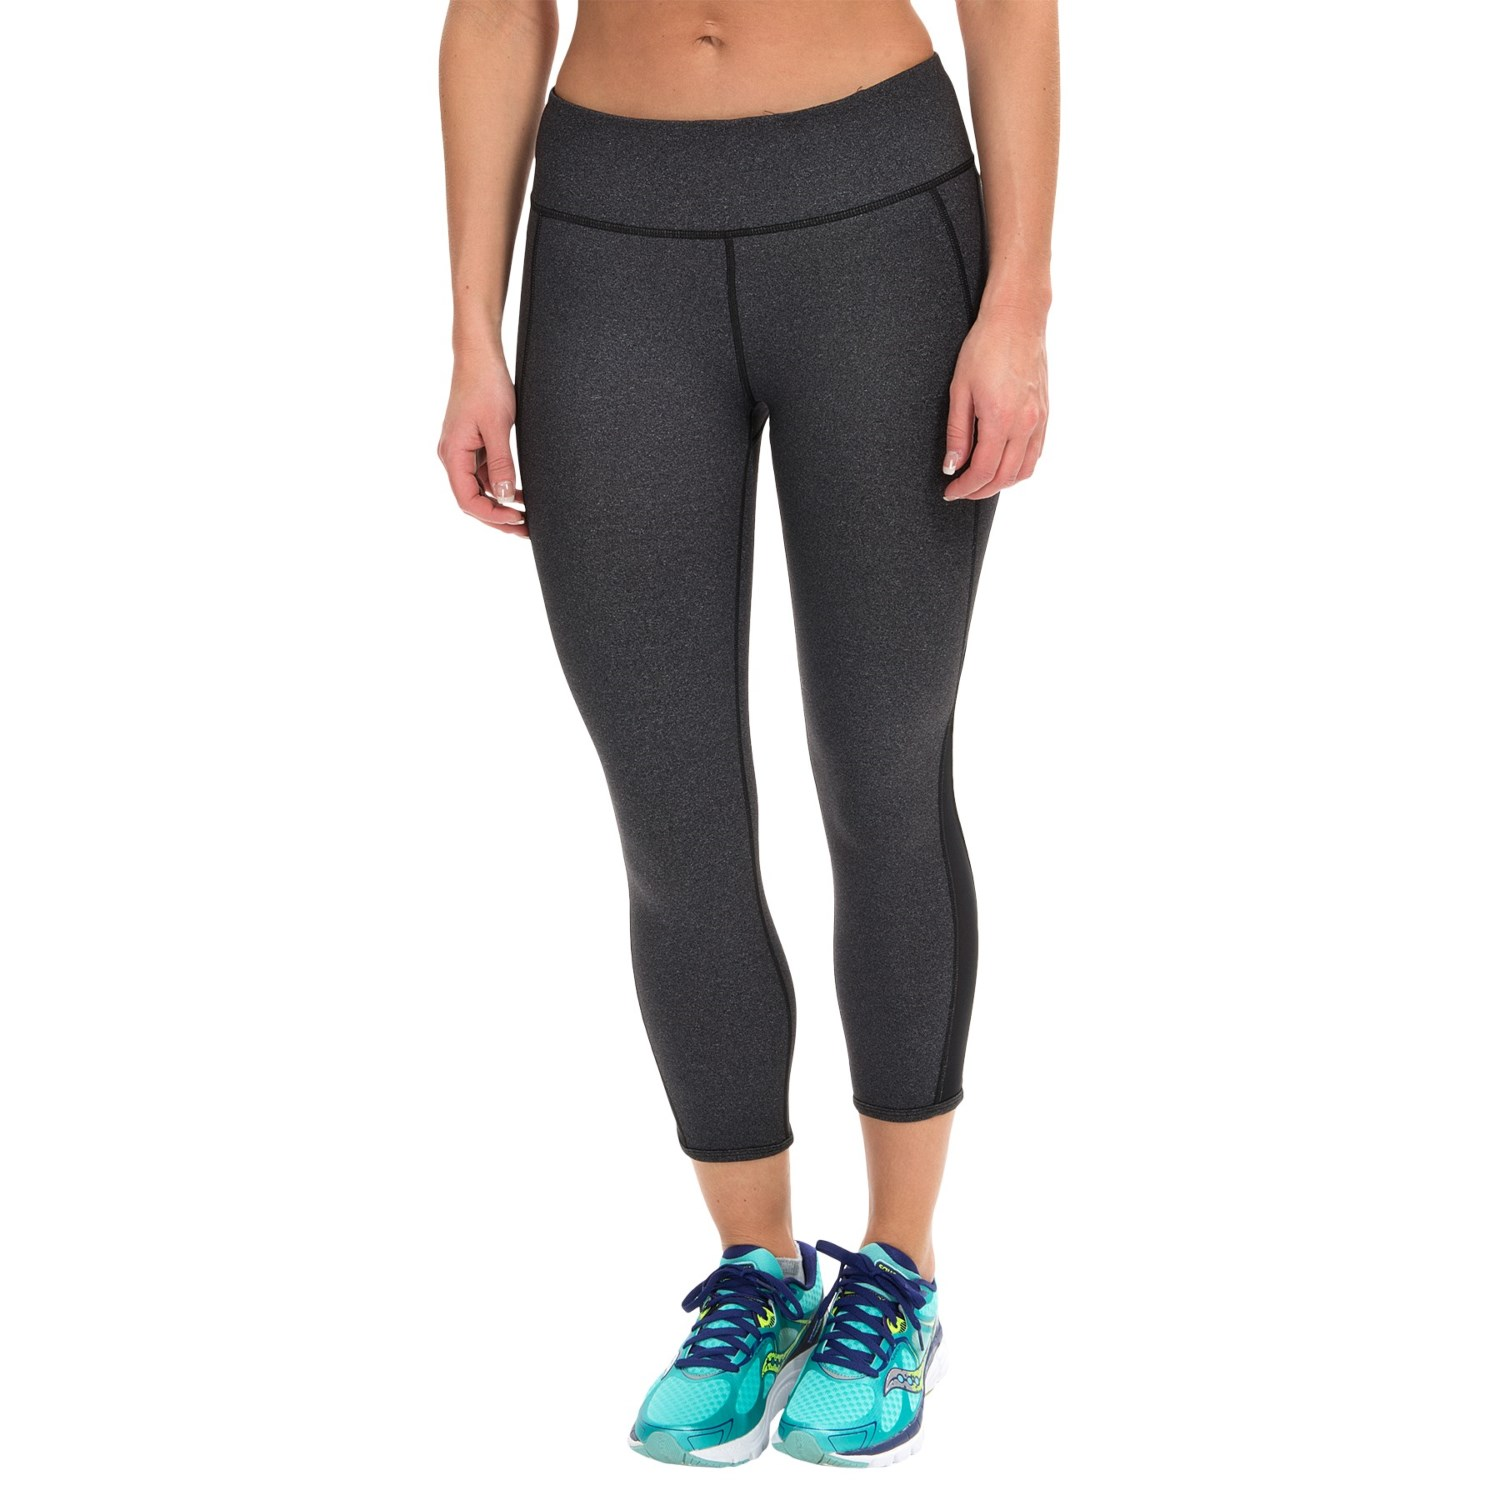 Kyodan Technical Running Capris (For Women) 132WJ